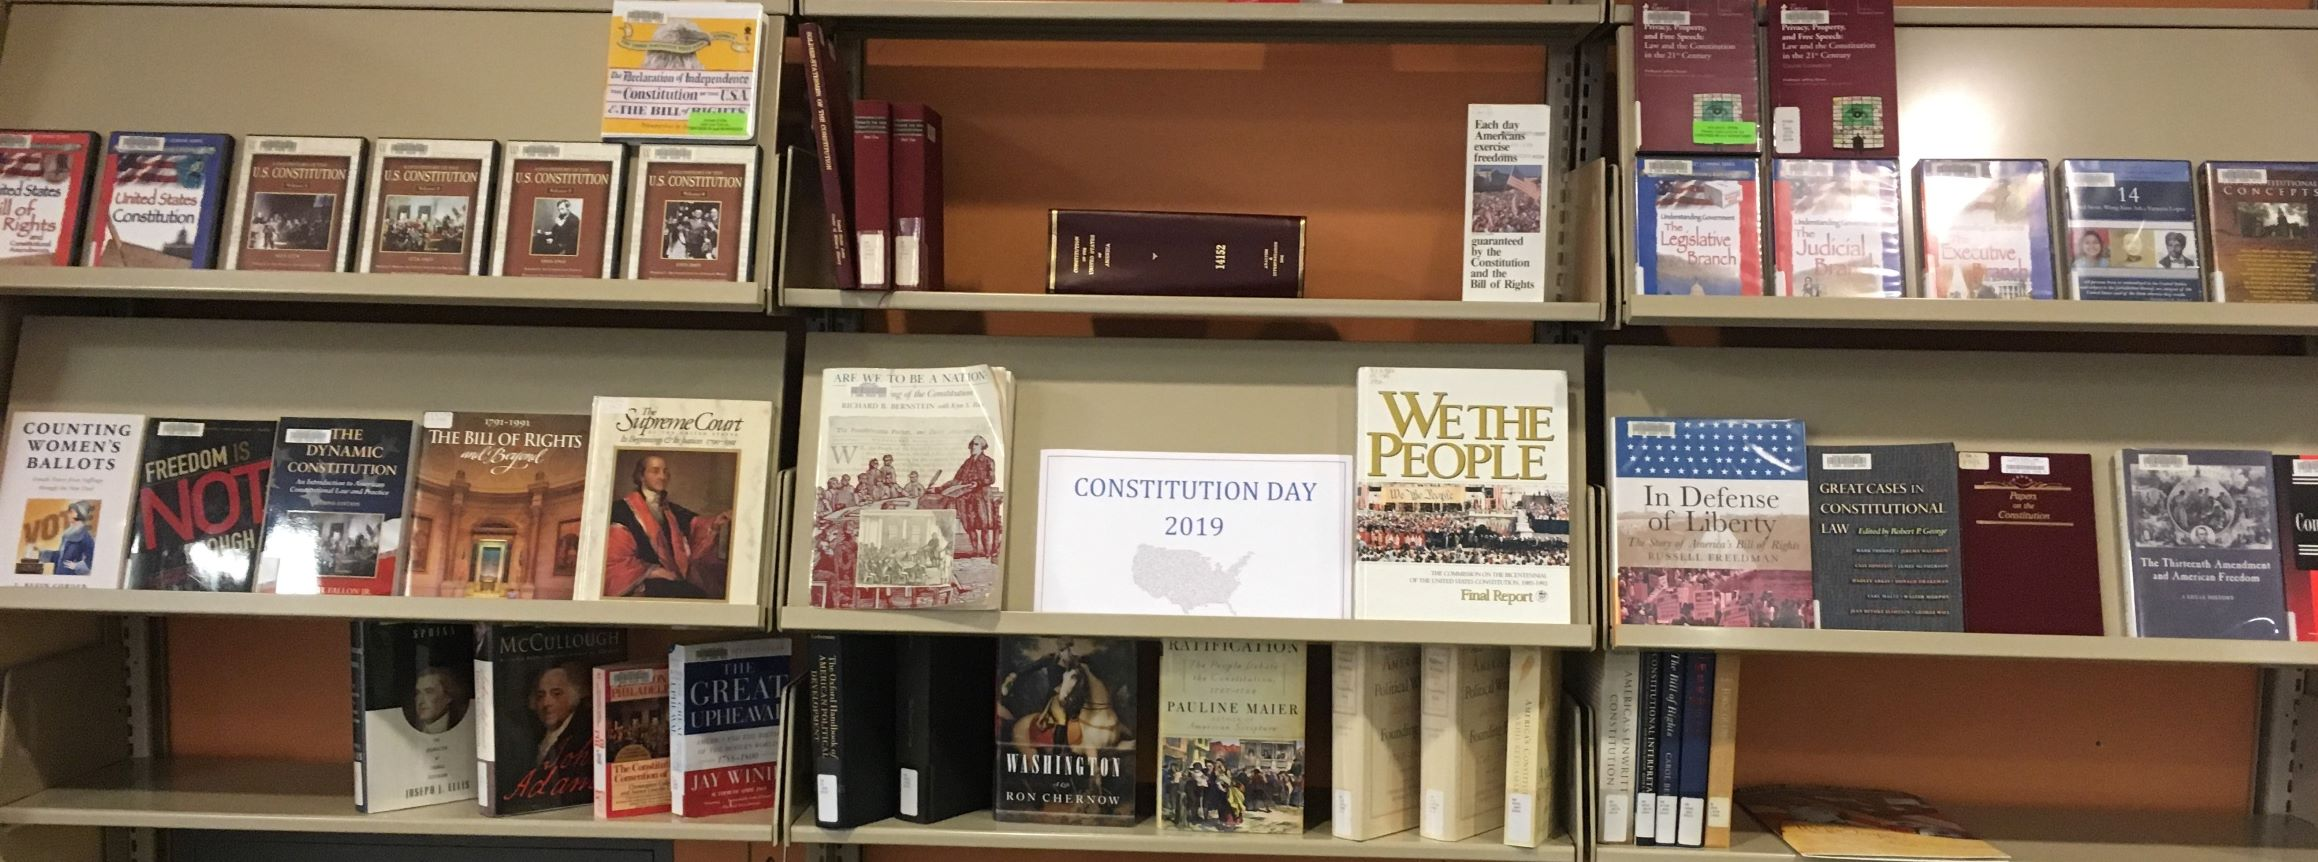 Constitution Day 2019 Display